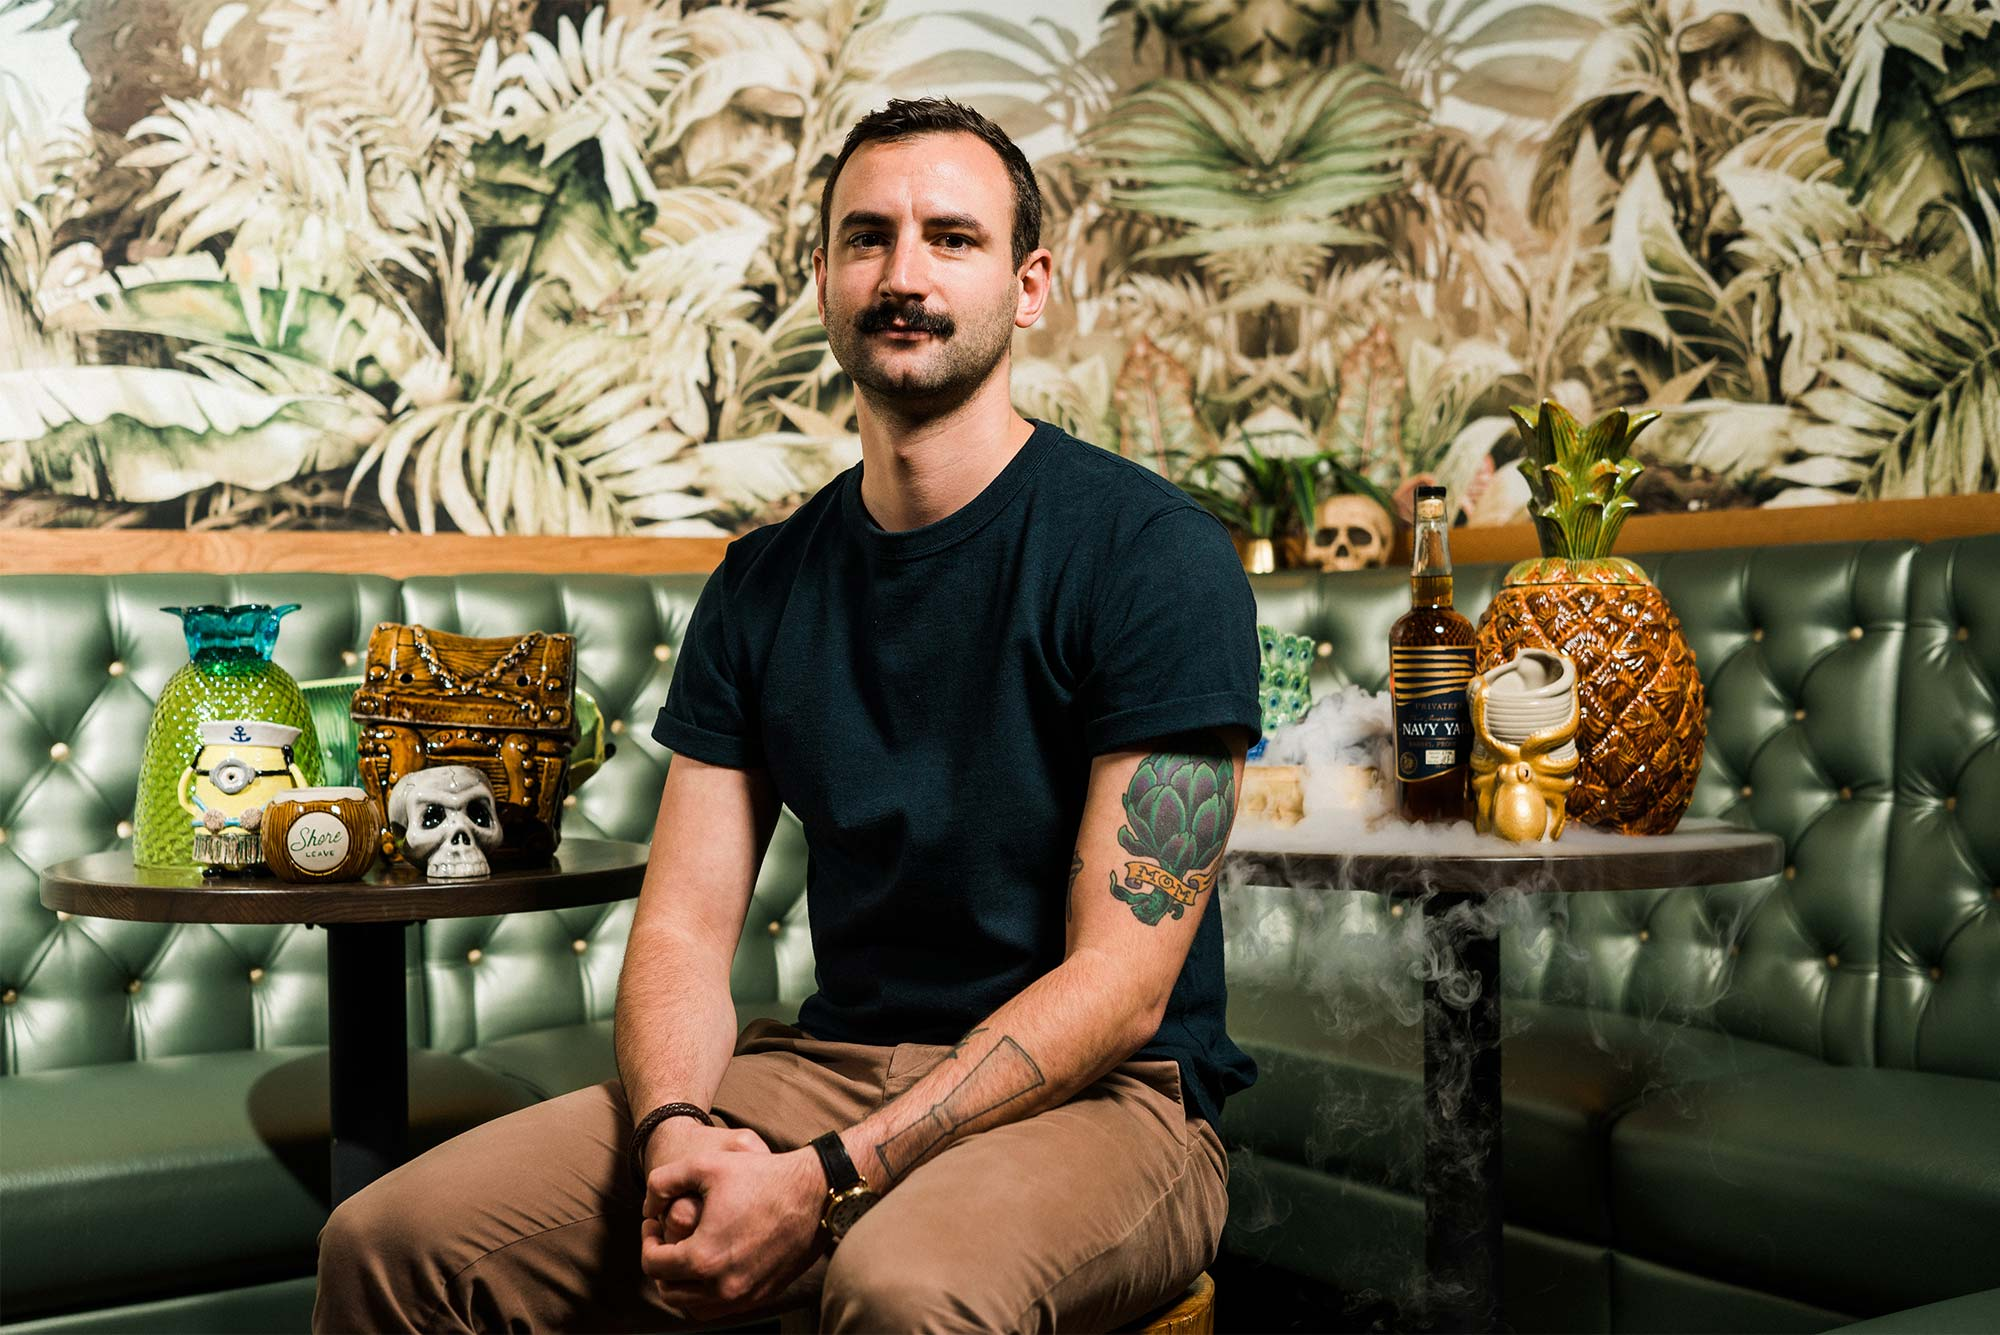 Portrait of Ryan Lotz, Beverage DIrector at Shore Leave Boston tiki bar, sitting in a green banquette surrounded by tropical wallpaper and tiki culture decoration. Photo by Chris McIntosh